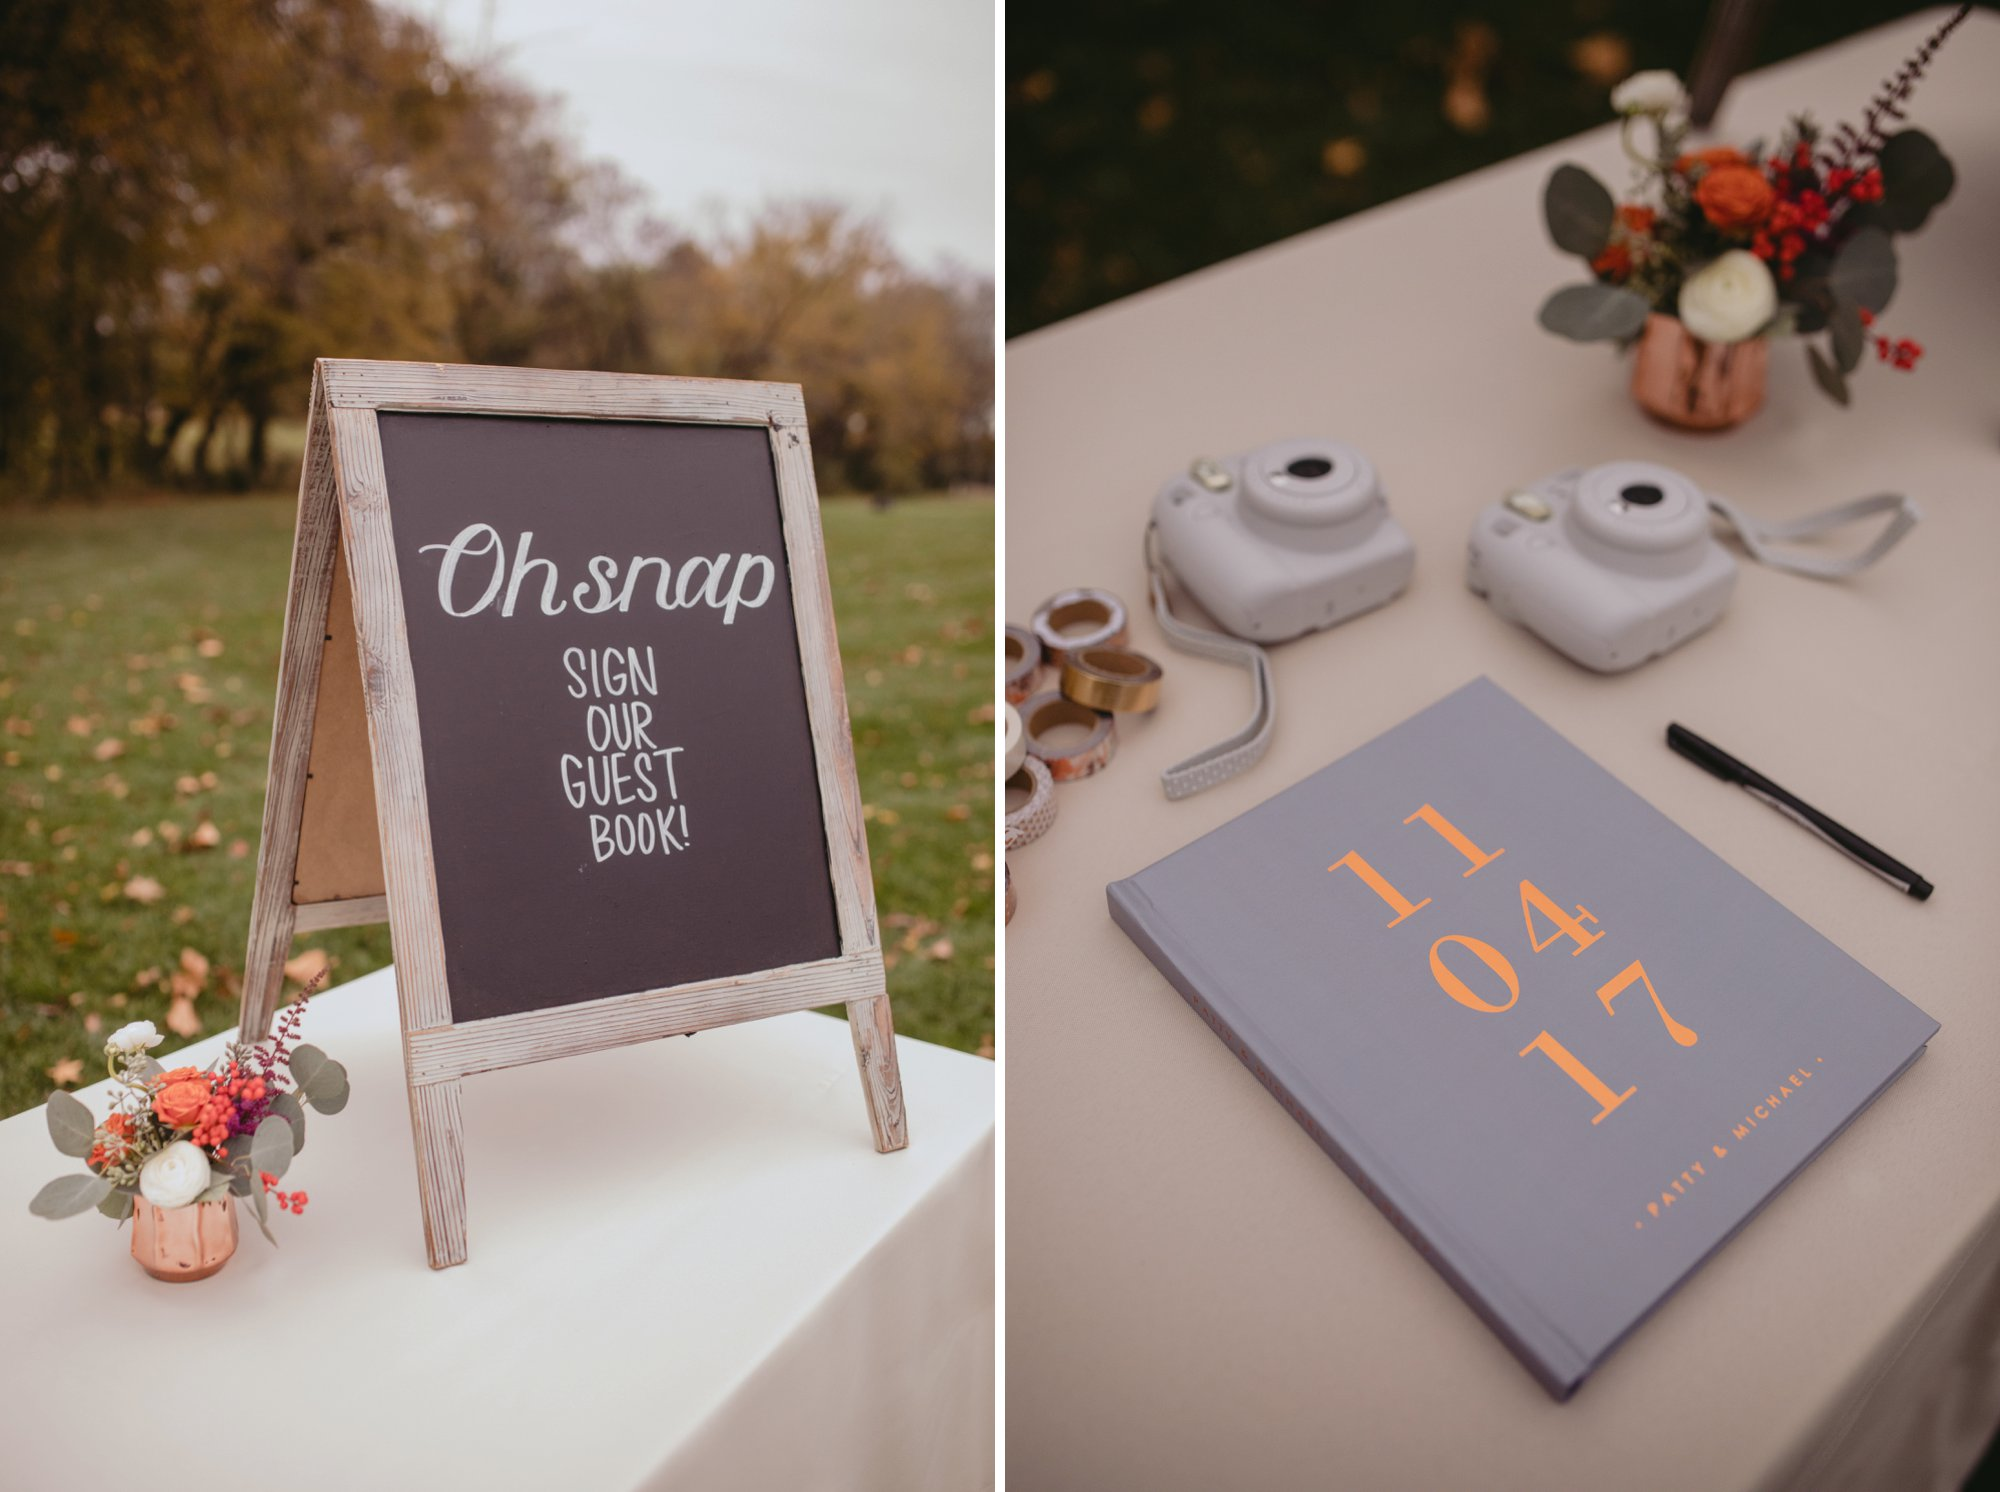 Autumn Richmond VA winery wedding at Upper Shirley Vineyards with lush garden florals and old Hollywood glamour guestbook instax